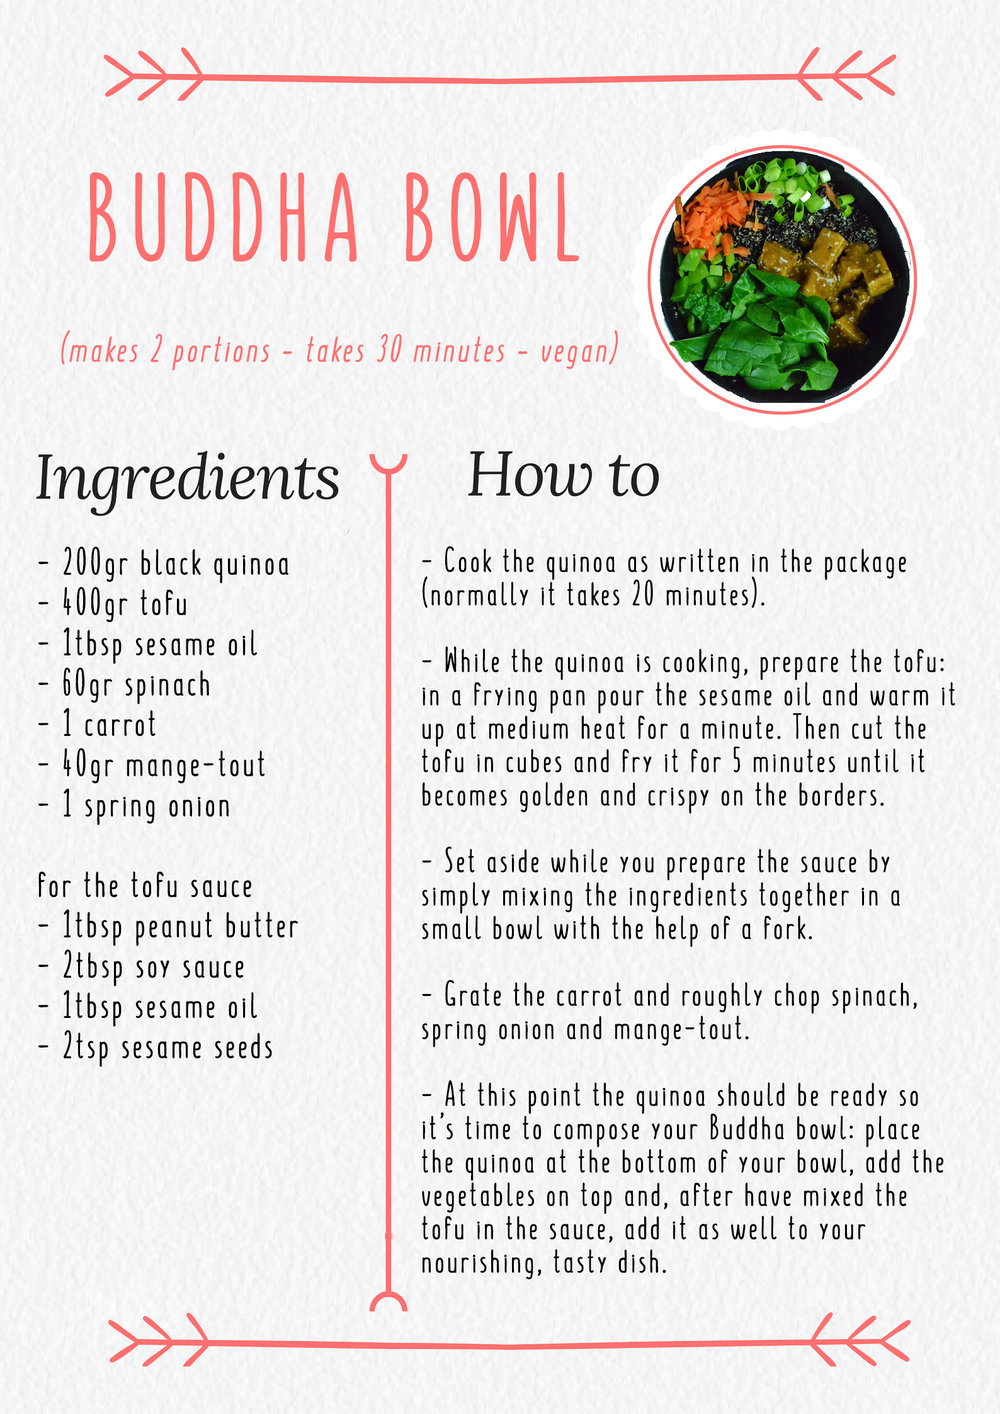 She Smiles - buddah bowl recipe